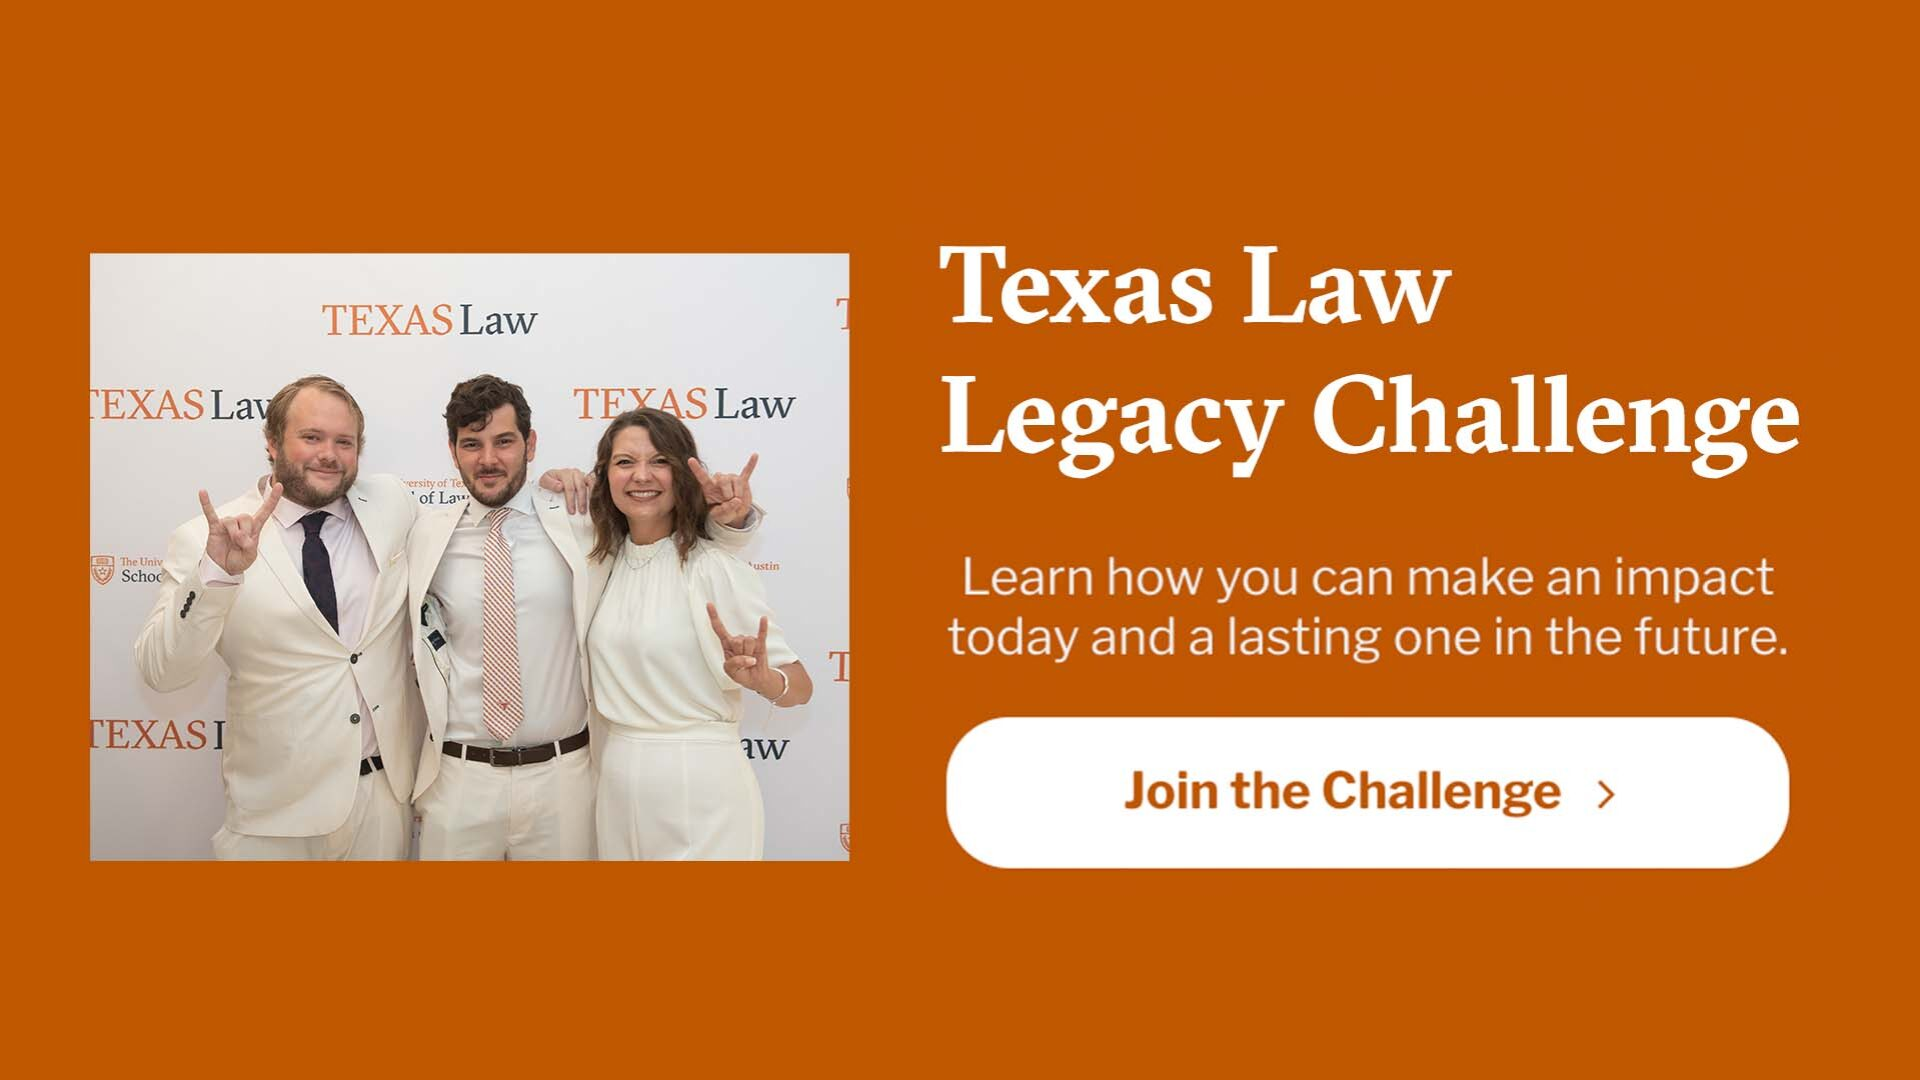 Texas Law Legacy Challenge - Learn how you can make an impact today and a lasting one in the future. Join the Challenge